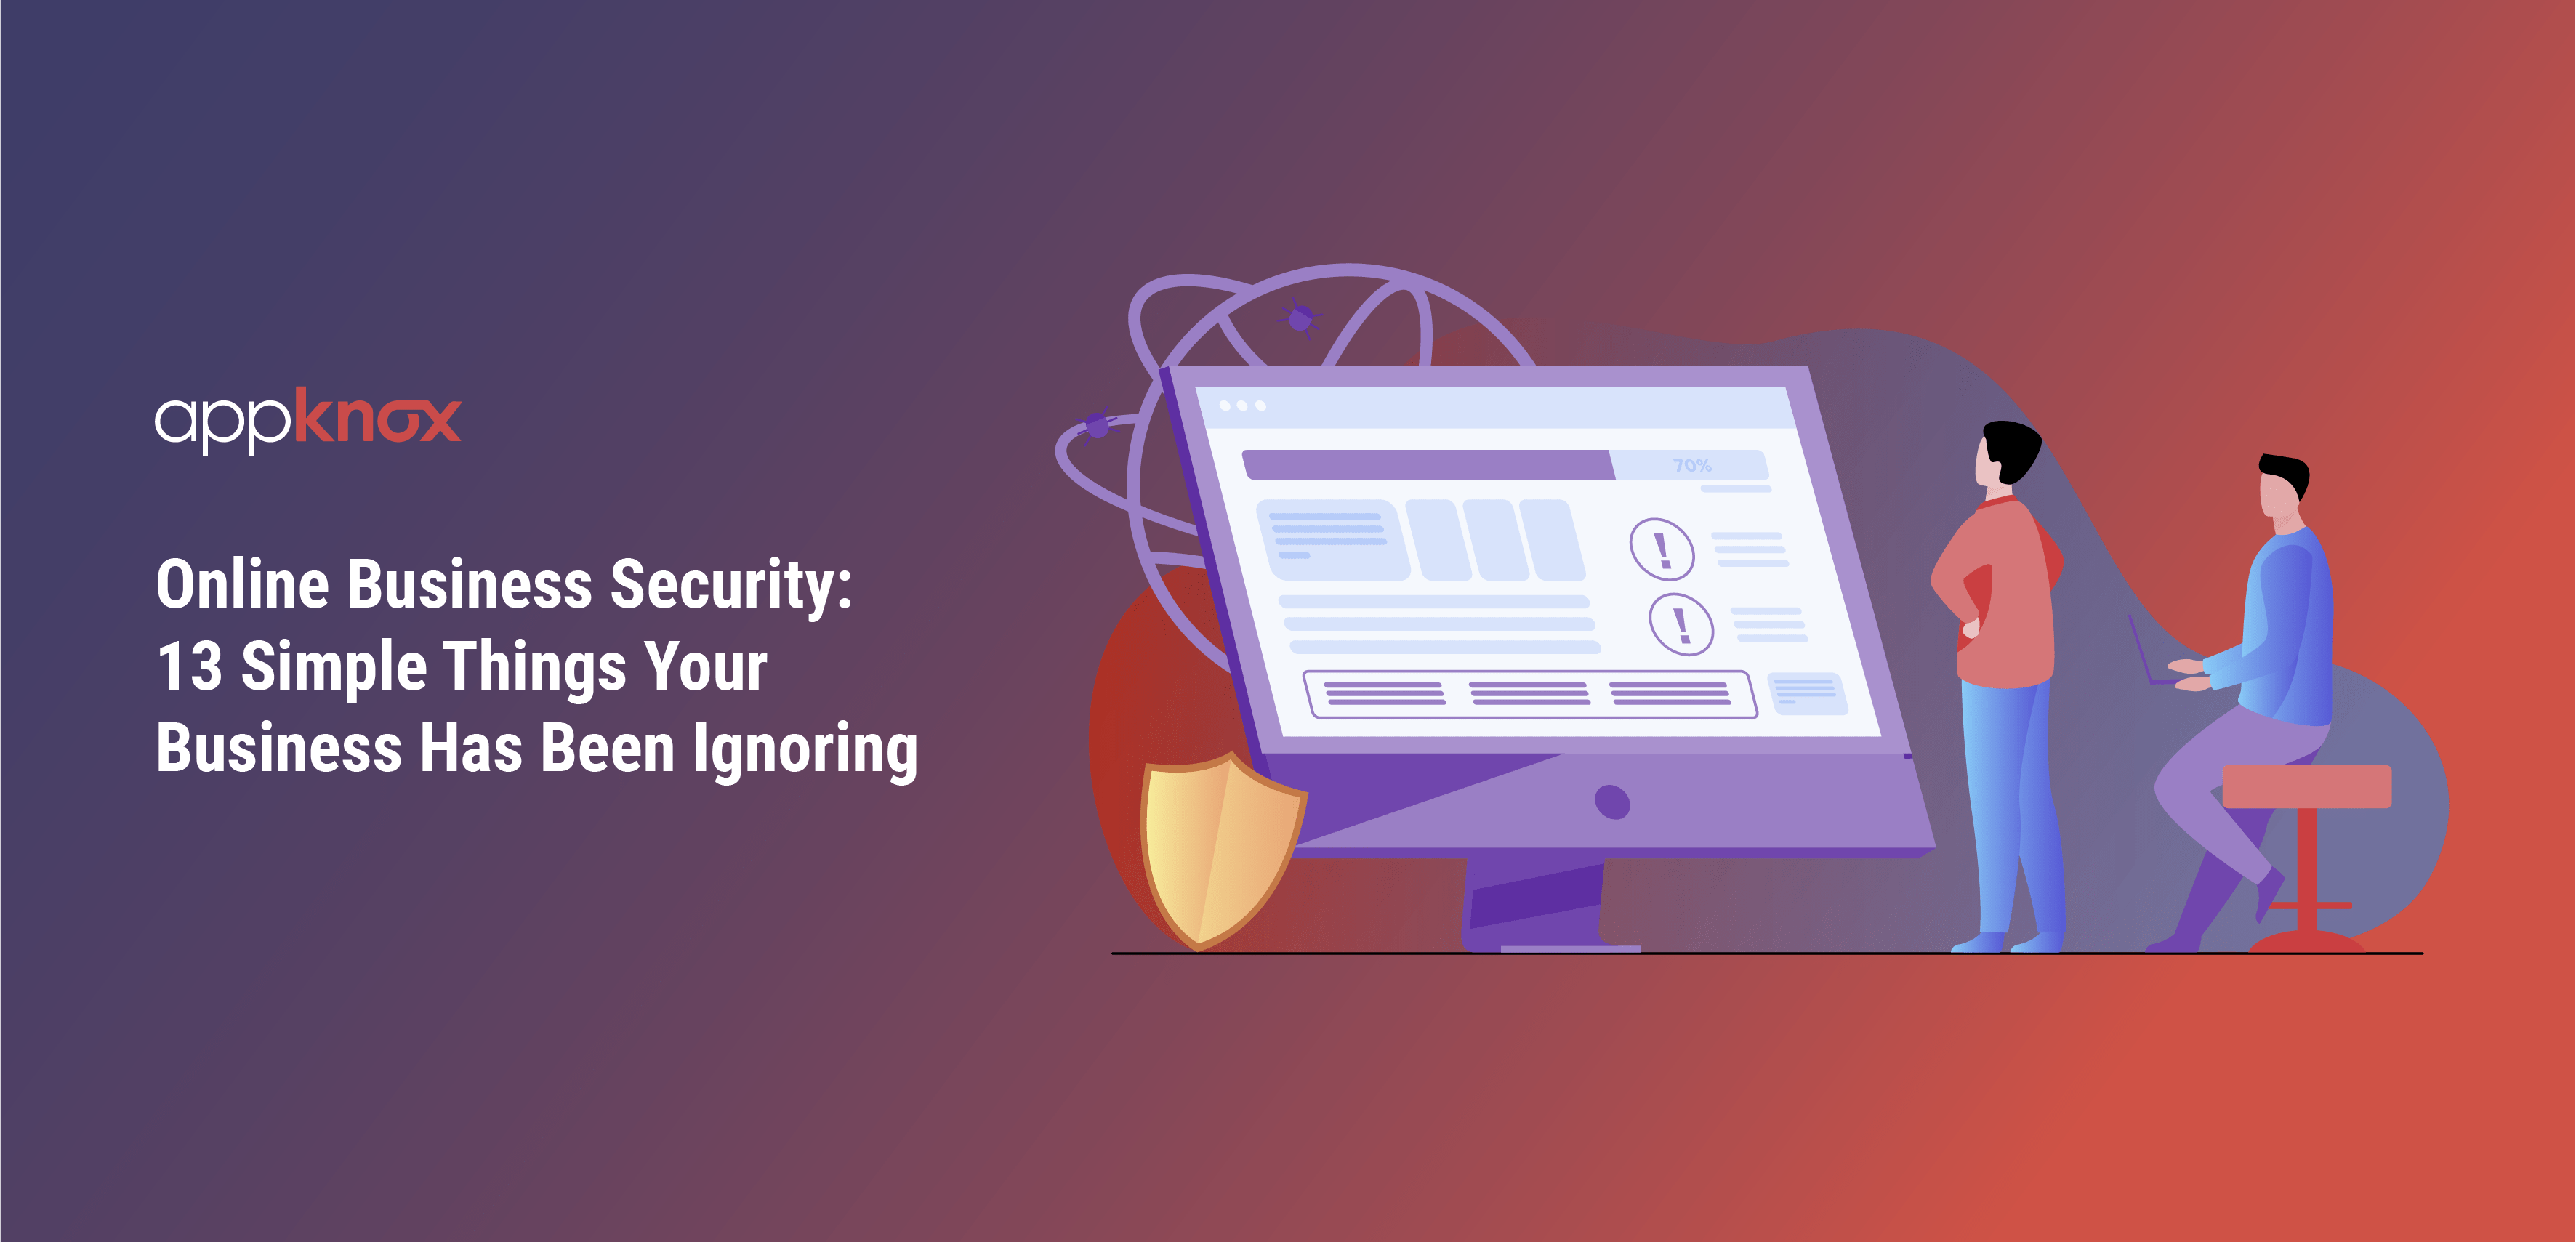 Online Business Security: 13 Simple Things Your Business Has Been Ignoring